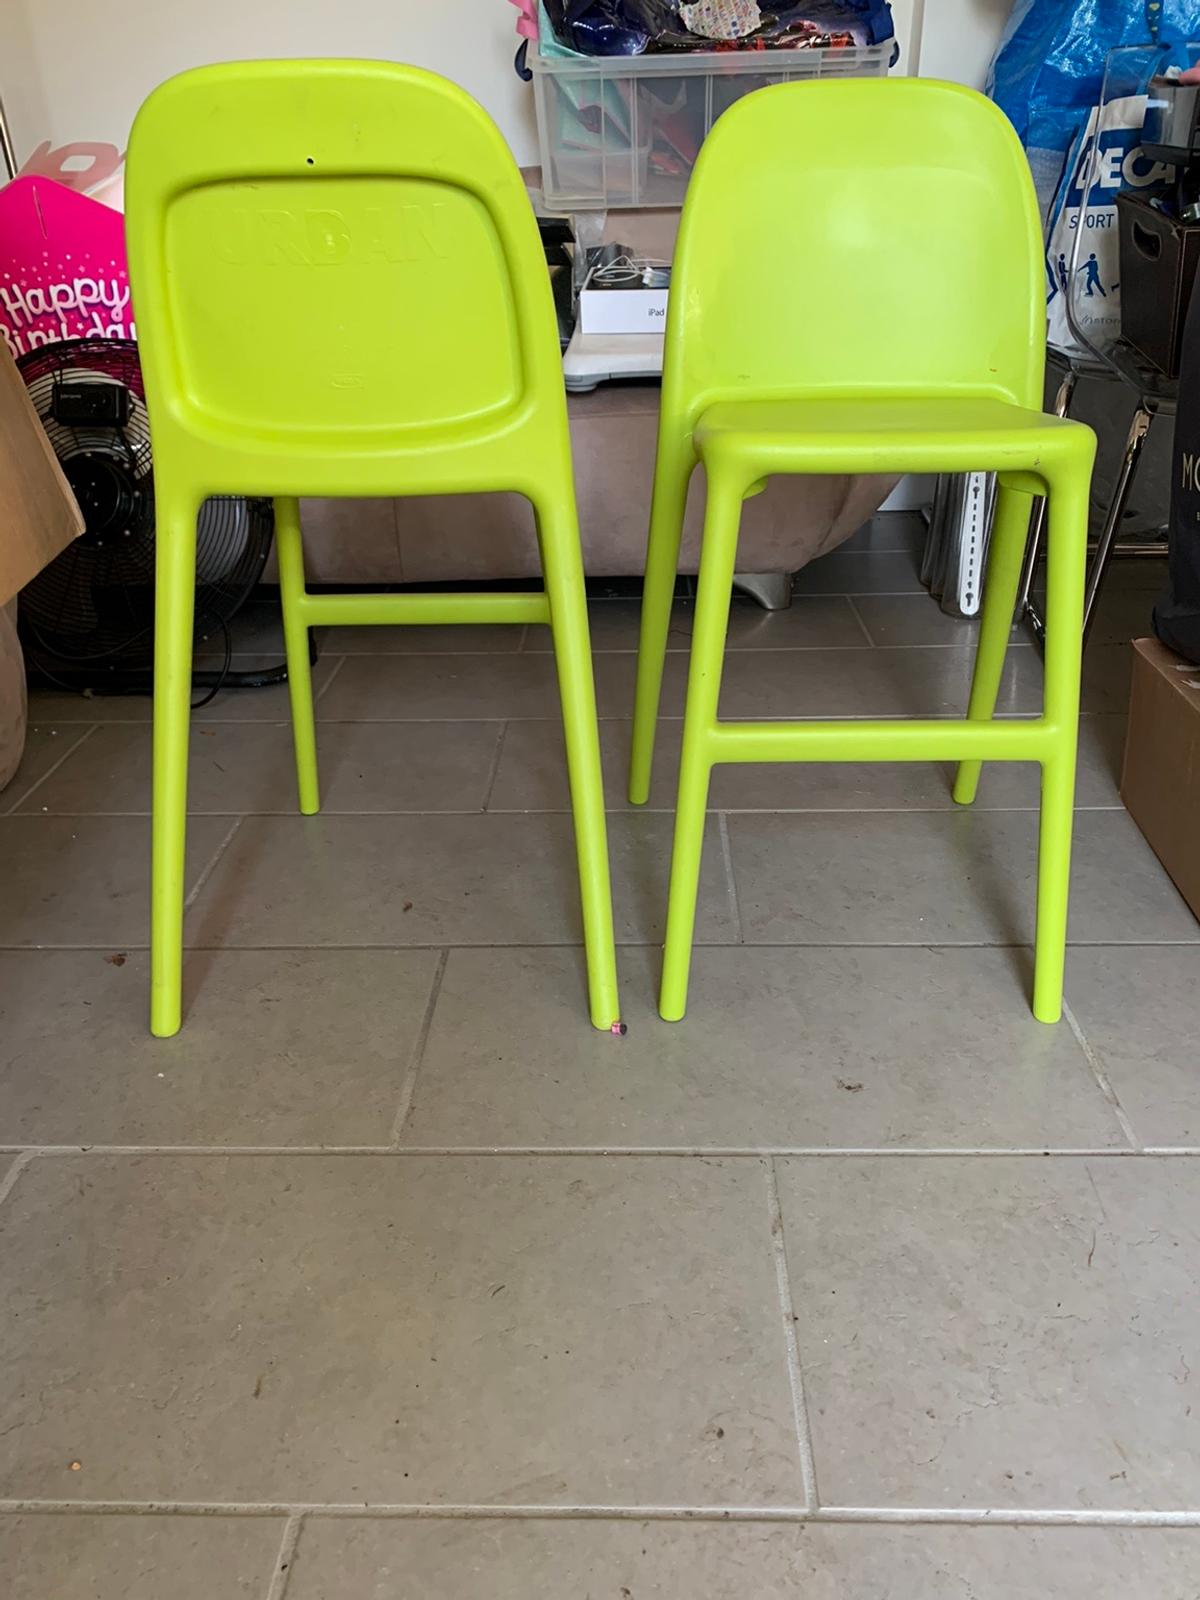 Picture of: Kids Table Chairs In E11 London Borough Of Redbridge For 10 00 For Sale Shpock